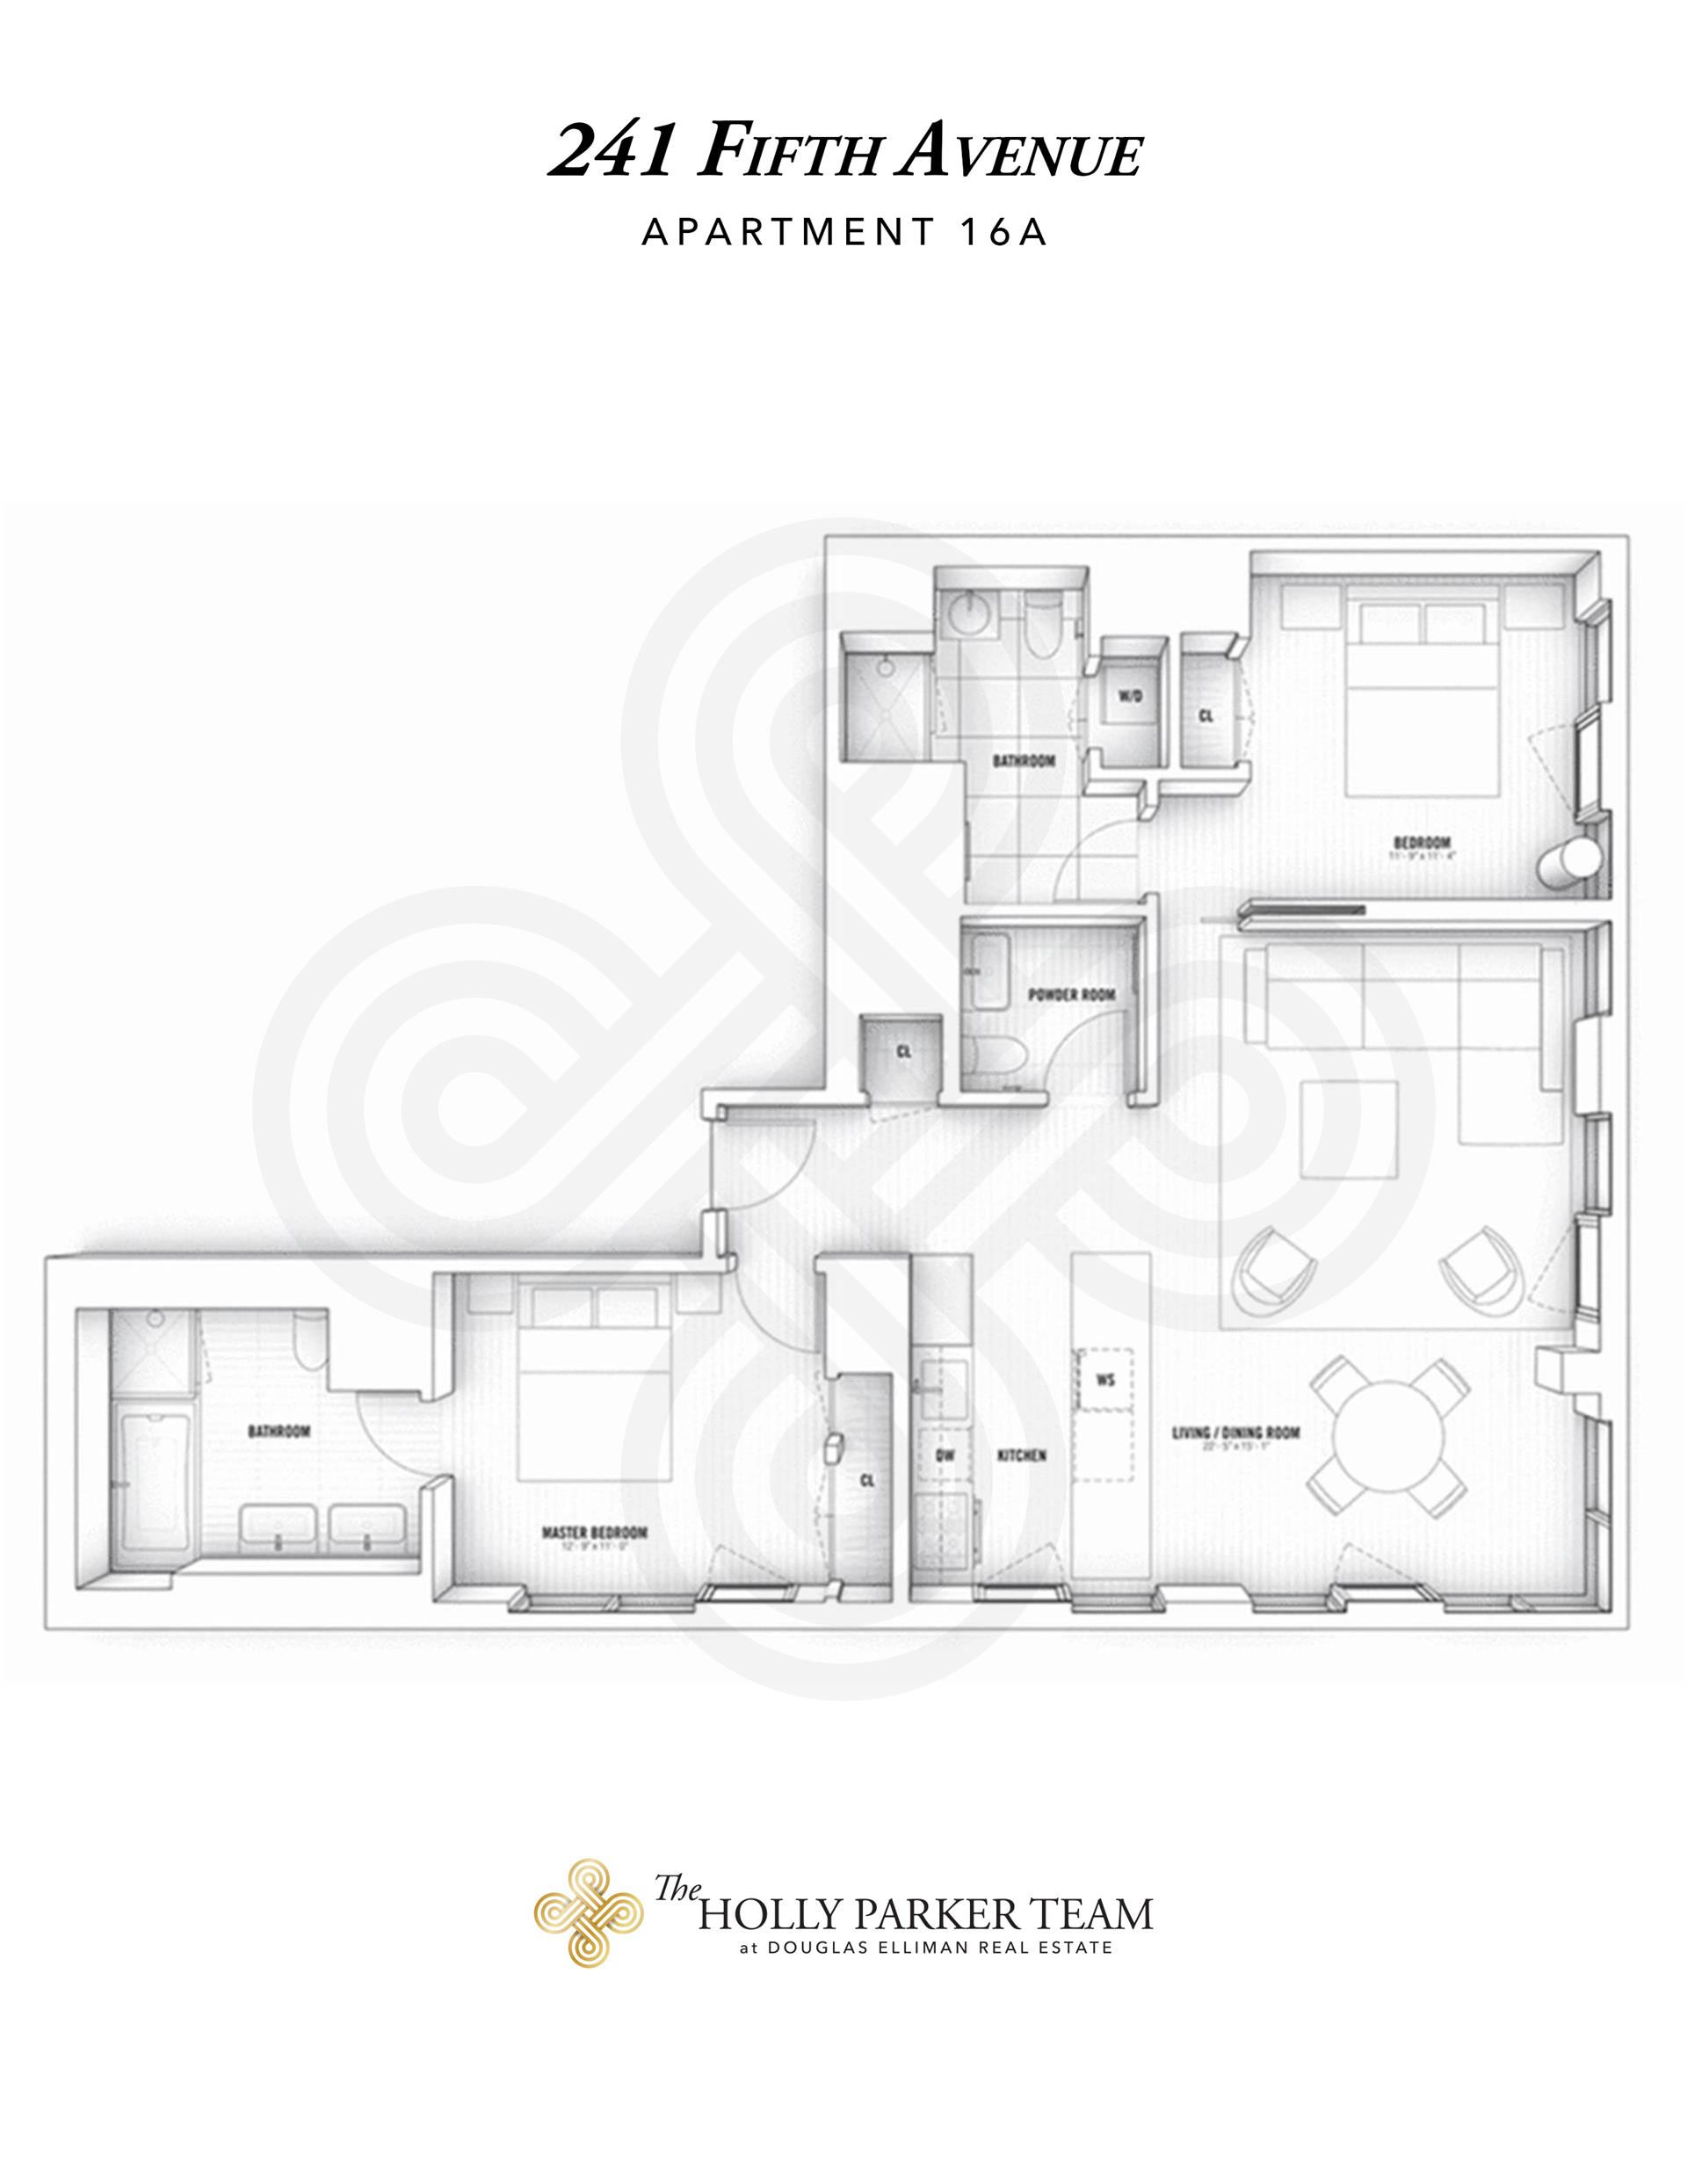 Floor plan of 241 Fifth Avenue, 16A - NoMad, New York